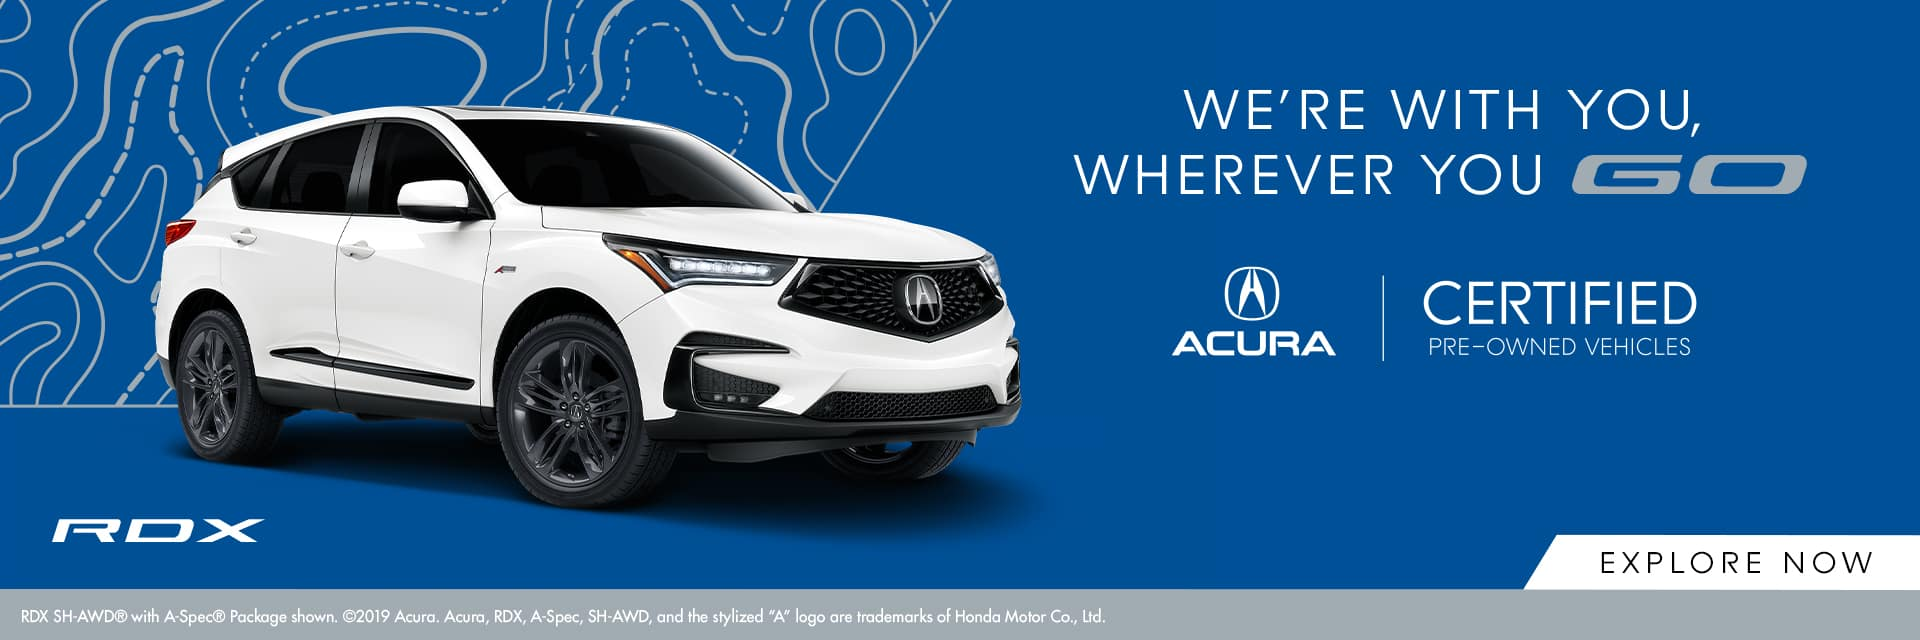 Acura Certified Pre-Owned Sales Event